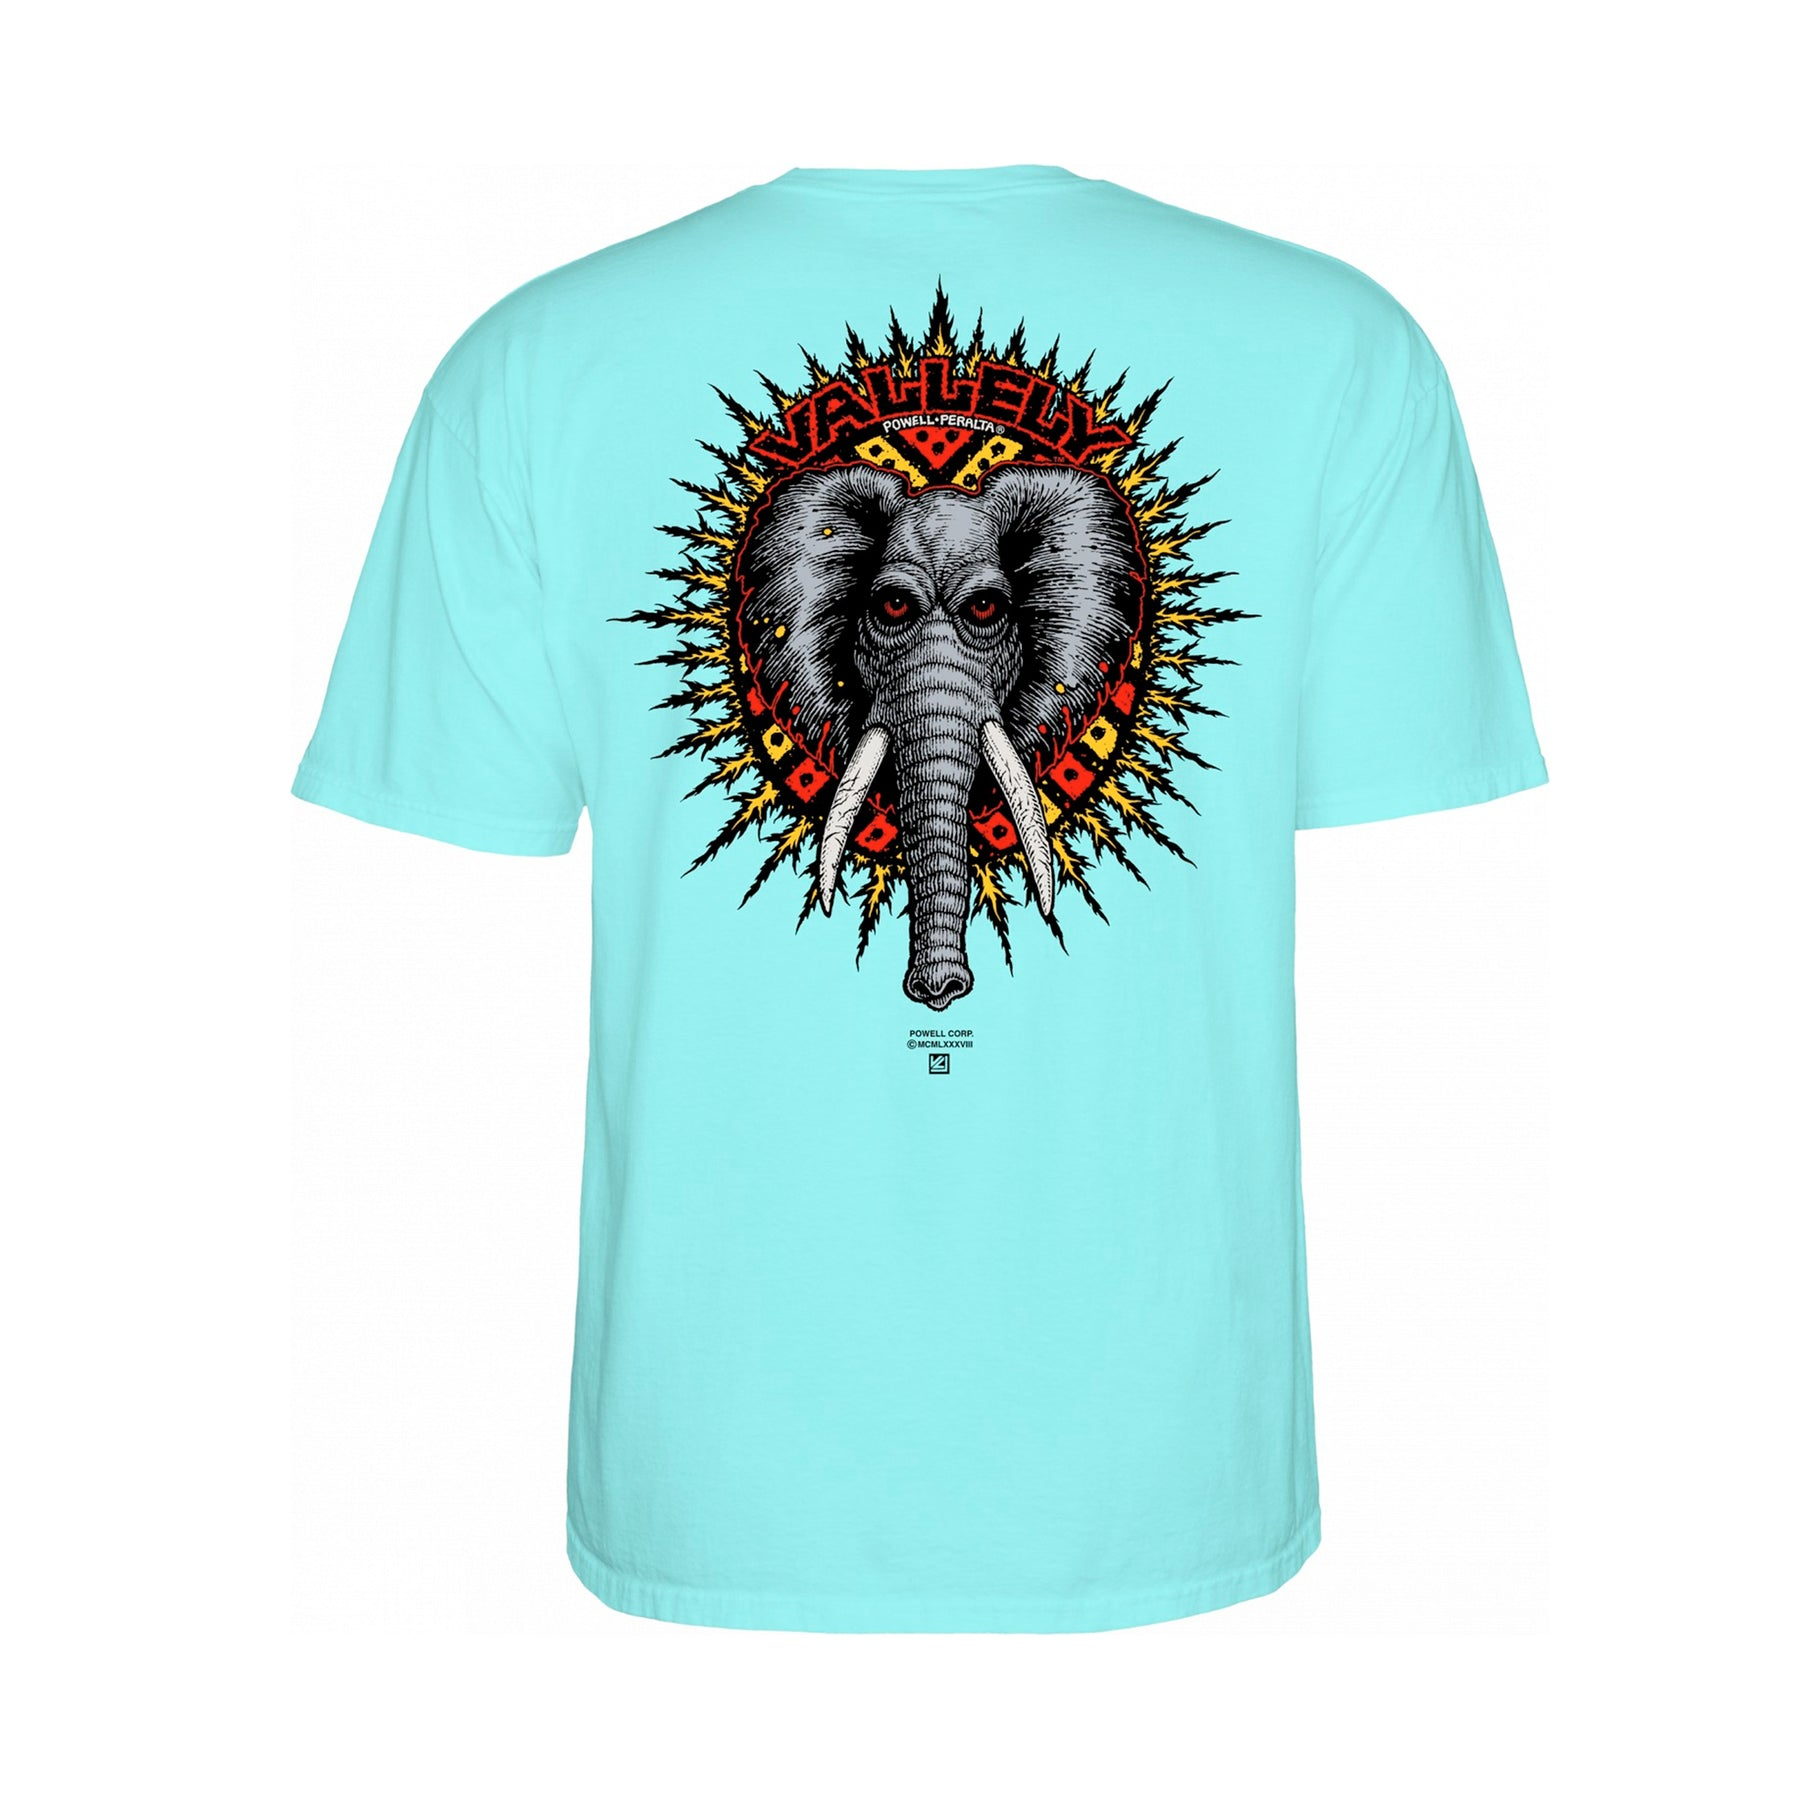 1f4e4b7a0 POWELL PERALTA MIKE VALLELY ELEPHANT CELADON MENS T-SHIRT - Urban Ave  Boardshop